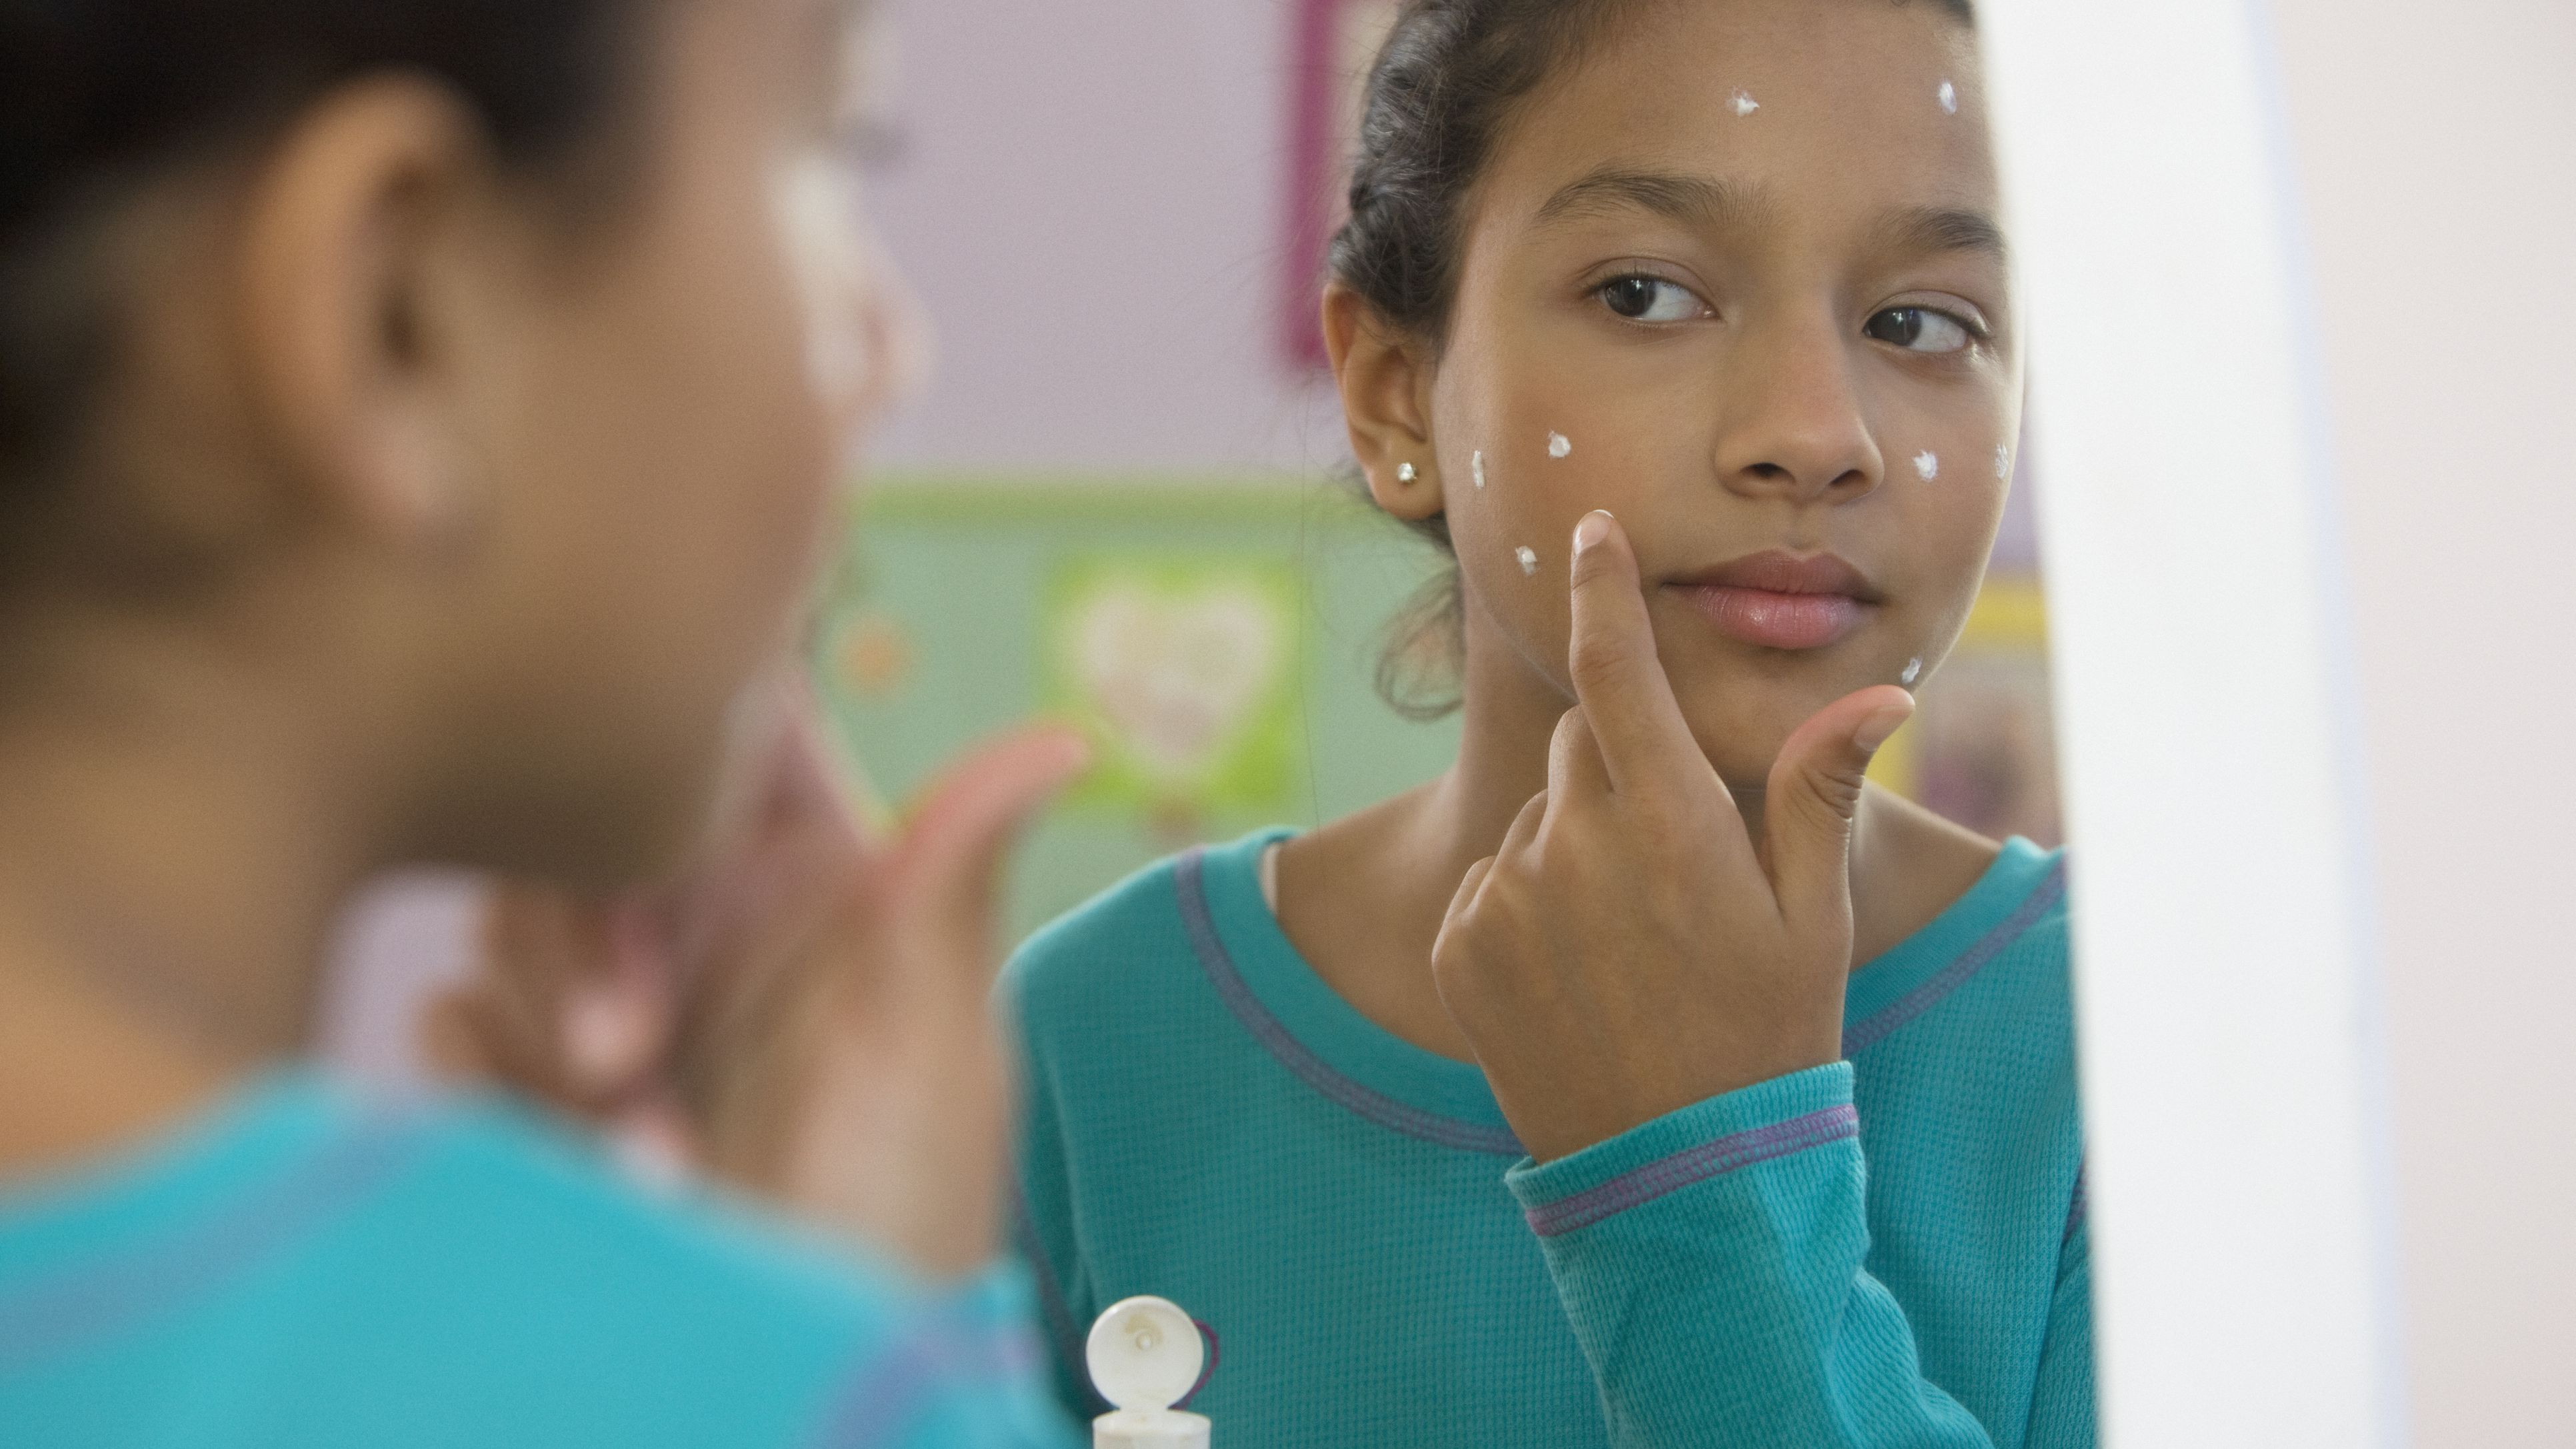 Does Proactiv Work to Clear Acne?